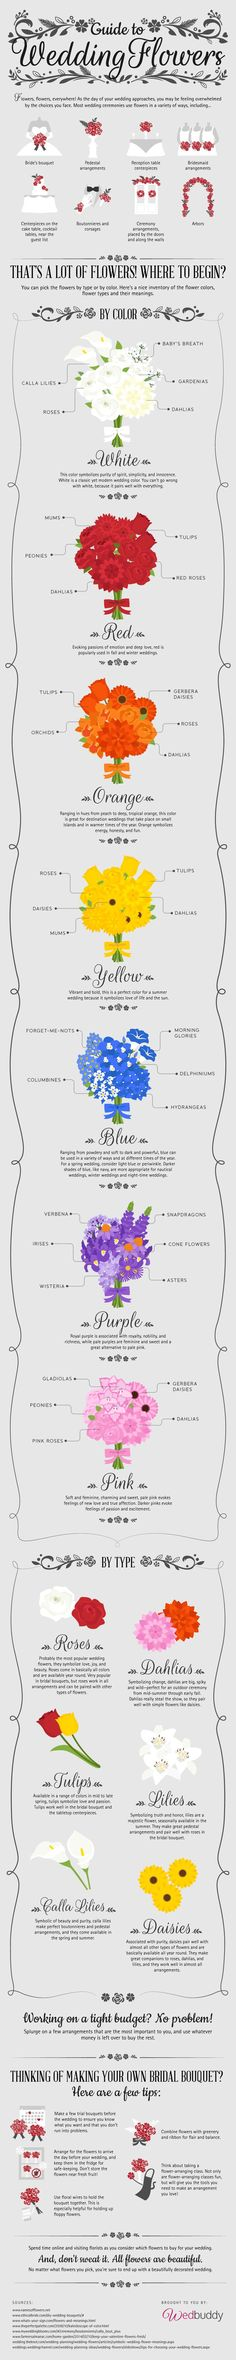 The flowers you choose for your perfect wedding day are important. They'll not only be photographed, but will be instrumental to the décor and theme of your wedding. Because flowers are an integral part of your wedding, you'll want to make sure you know all you can about the flowers you choose. Use this infographic to help you decide what flowers best suit your personal style at:http://blog.wedbuddy.com/guide-flowers-ig/